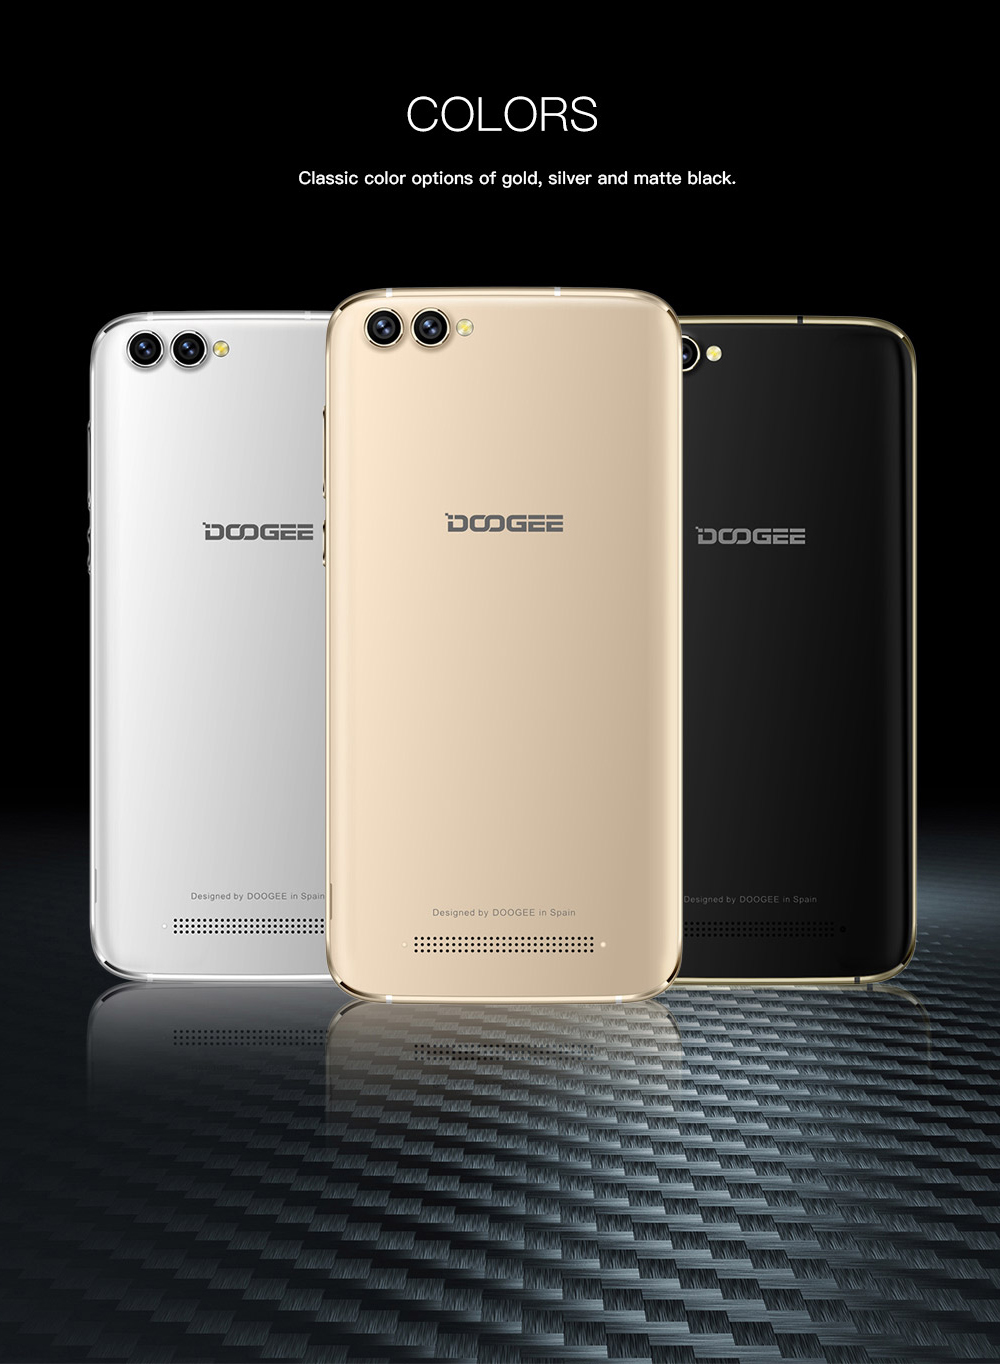 Фото DOOGEE X30 3G Mobile Phones Android 7.0 2GB RAM 16GB ROM Quad Core Smartphone 2x8.0MP+2x5.0MP Four Cameras 5 inch Cell Phone